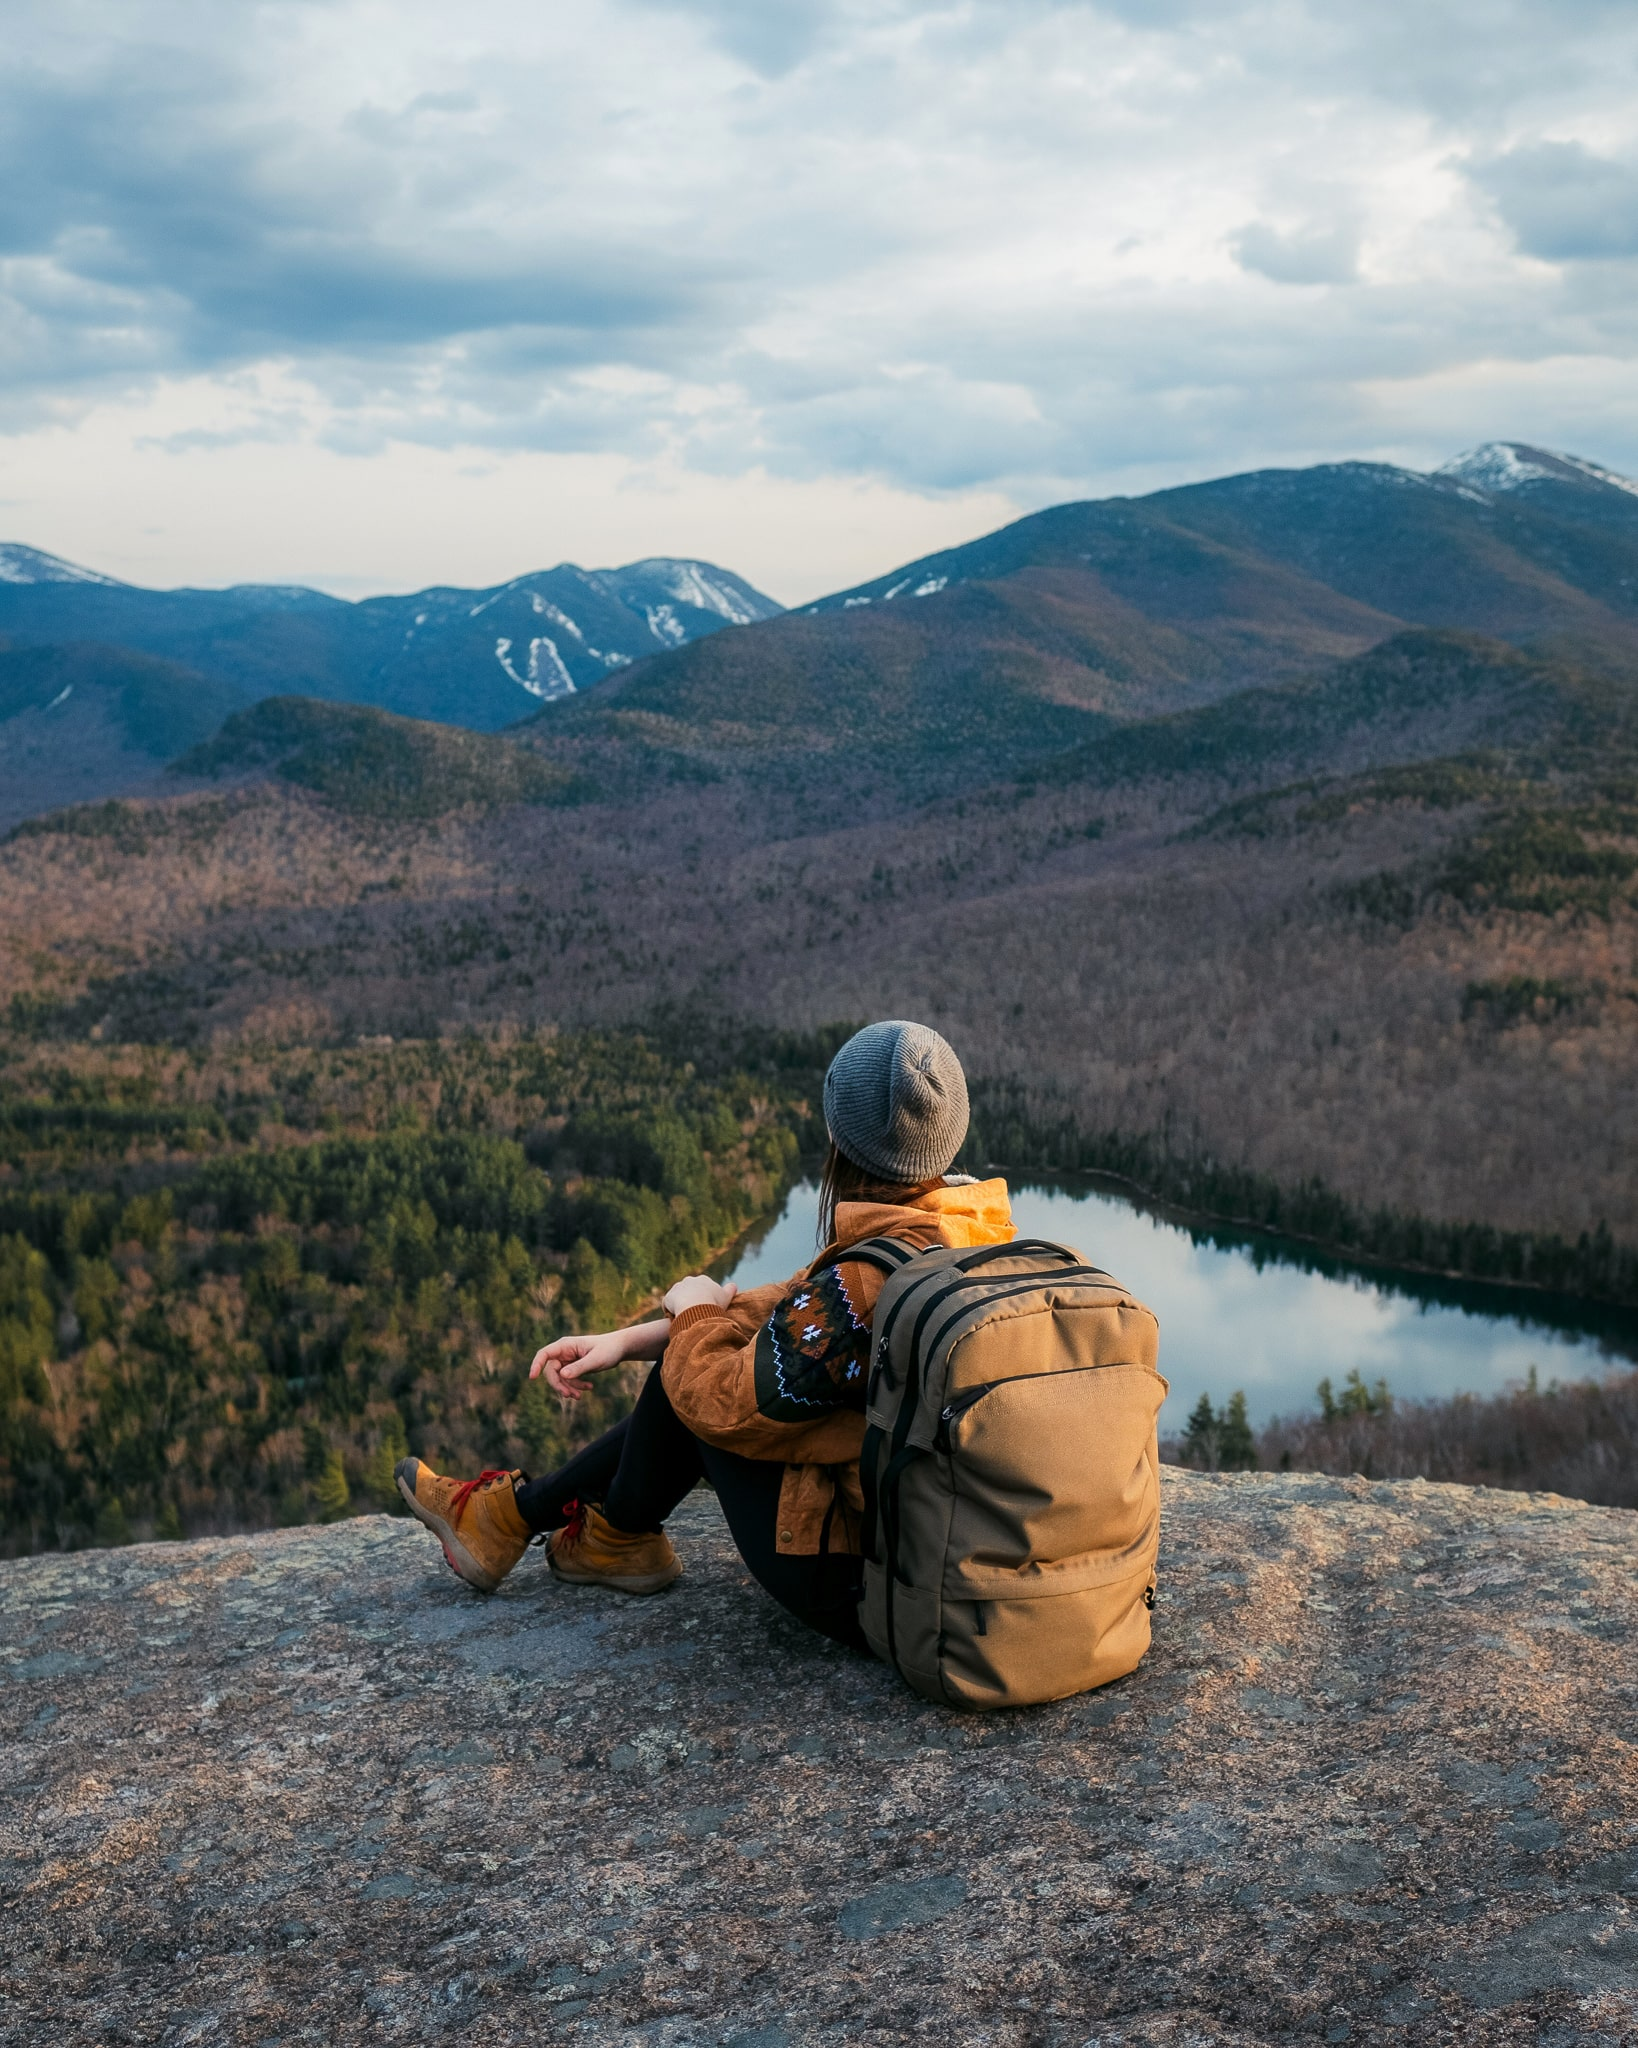 Mt. Jo is one of the best hikes in Lake Placid in the Adirondacks